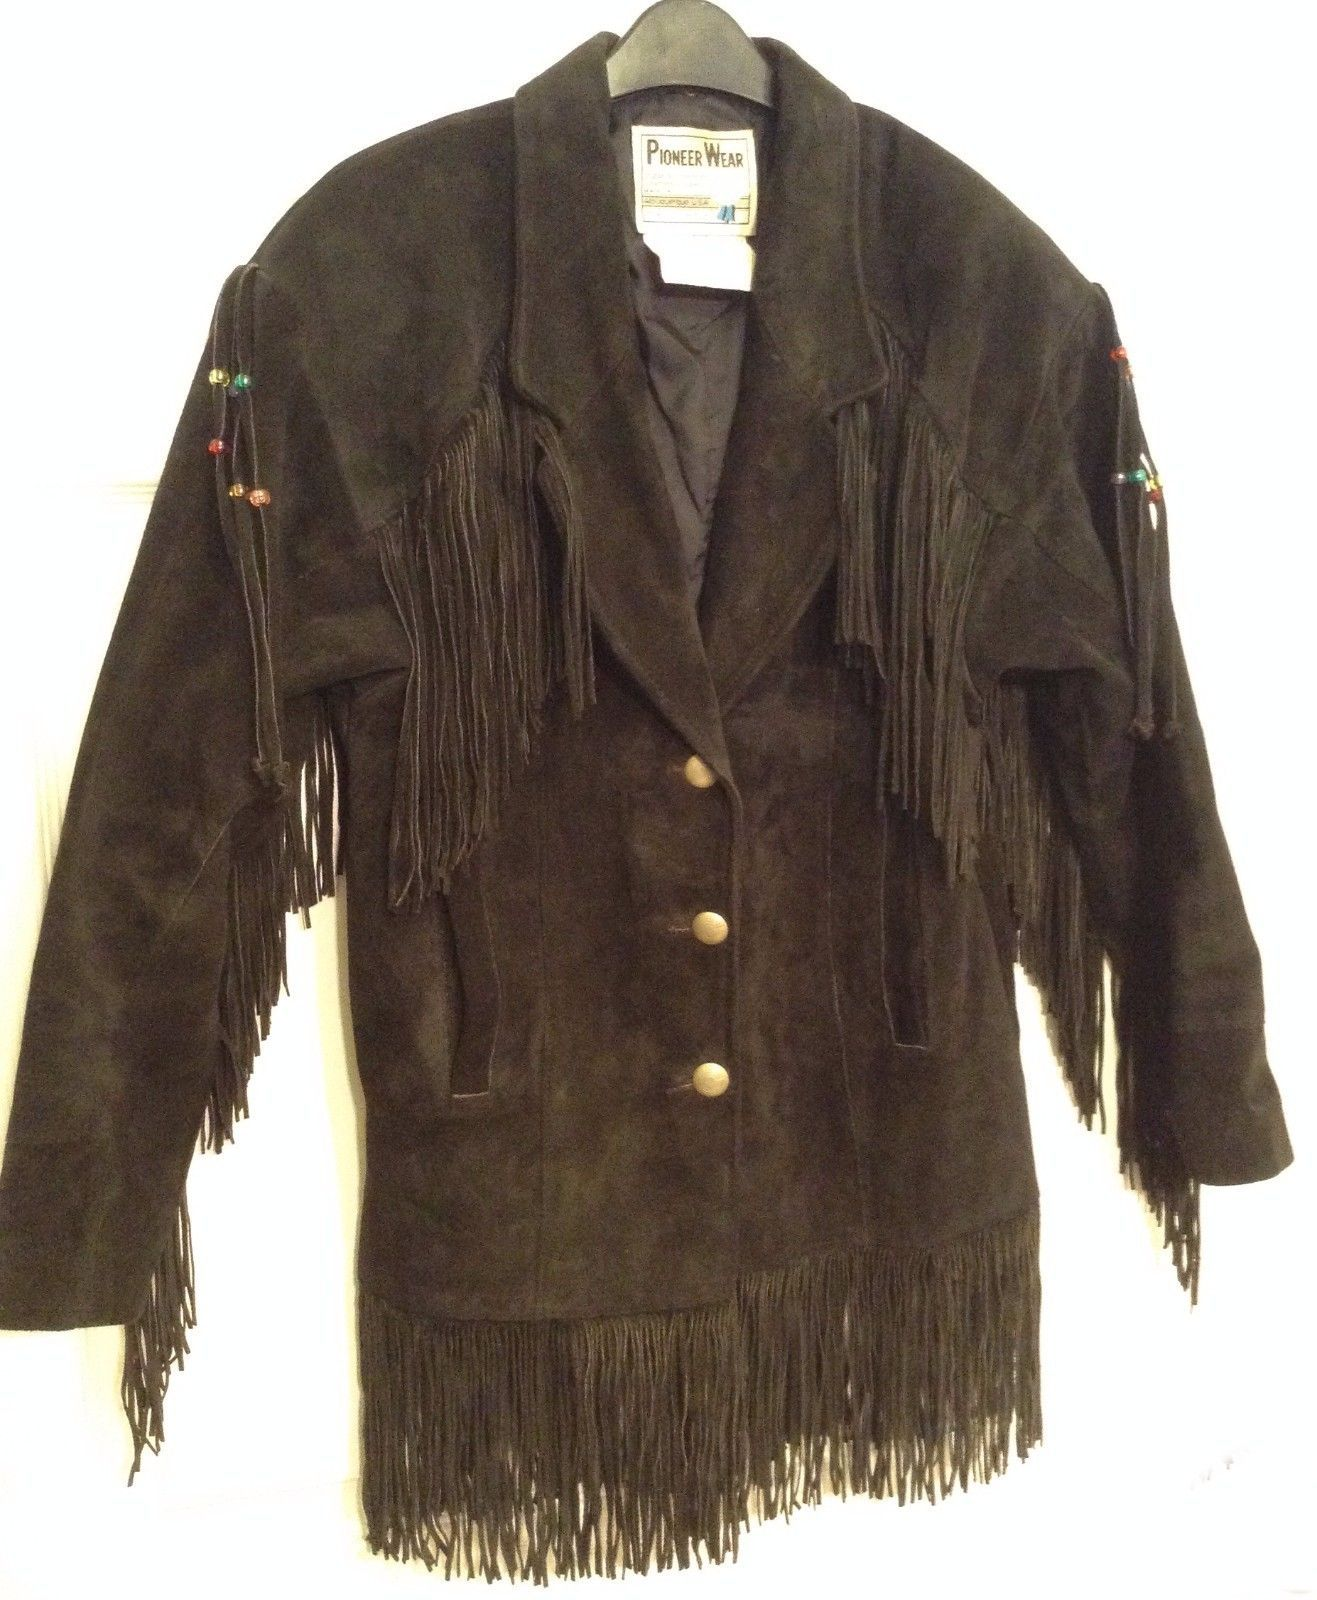 Pioneer Wear Suede Jacket with Fringe & Beads - Black Western Coat - Size 6